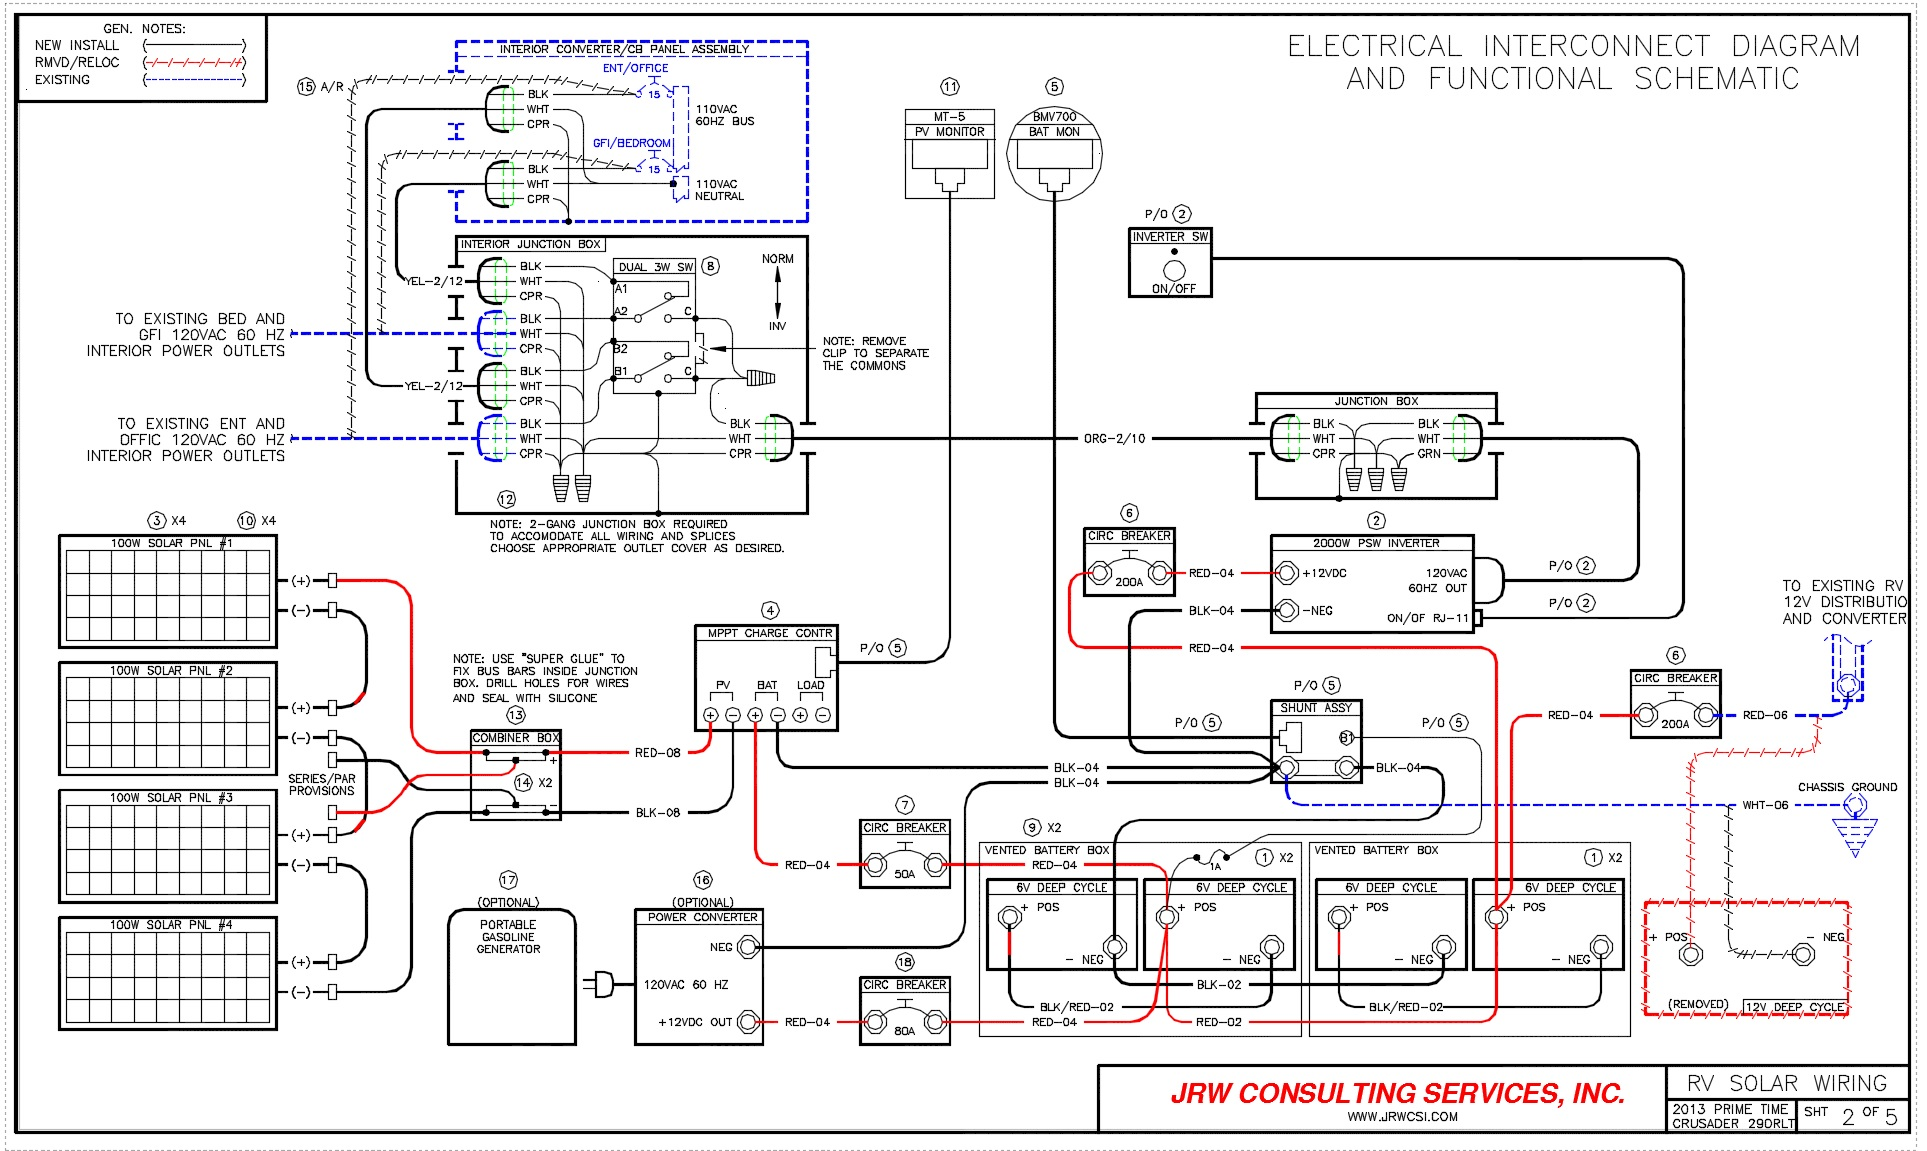 camper wiring schematic wiring schematics diagram rh enr green com RV AC Wiring Diagram RV AC Wiring Diagram